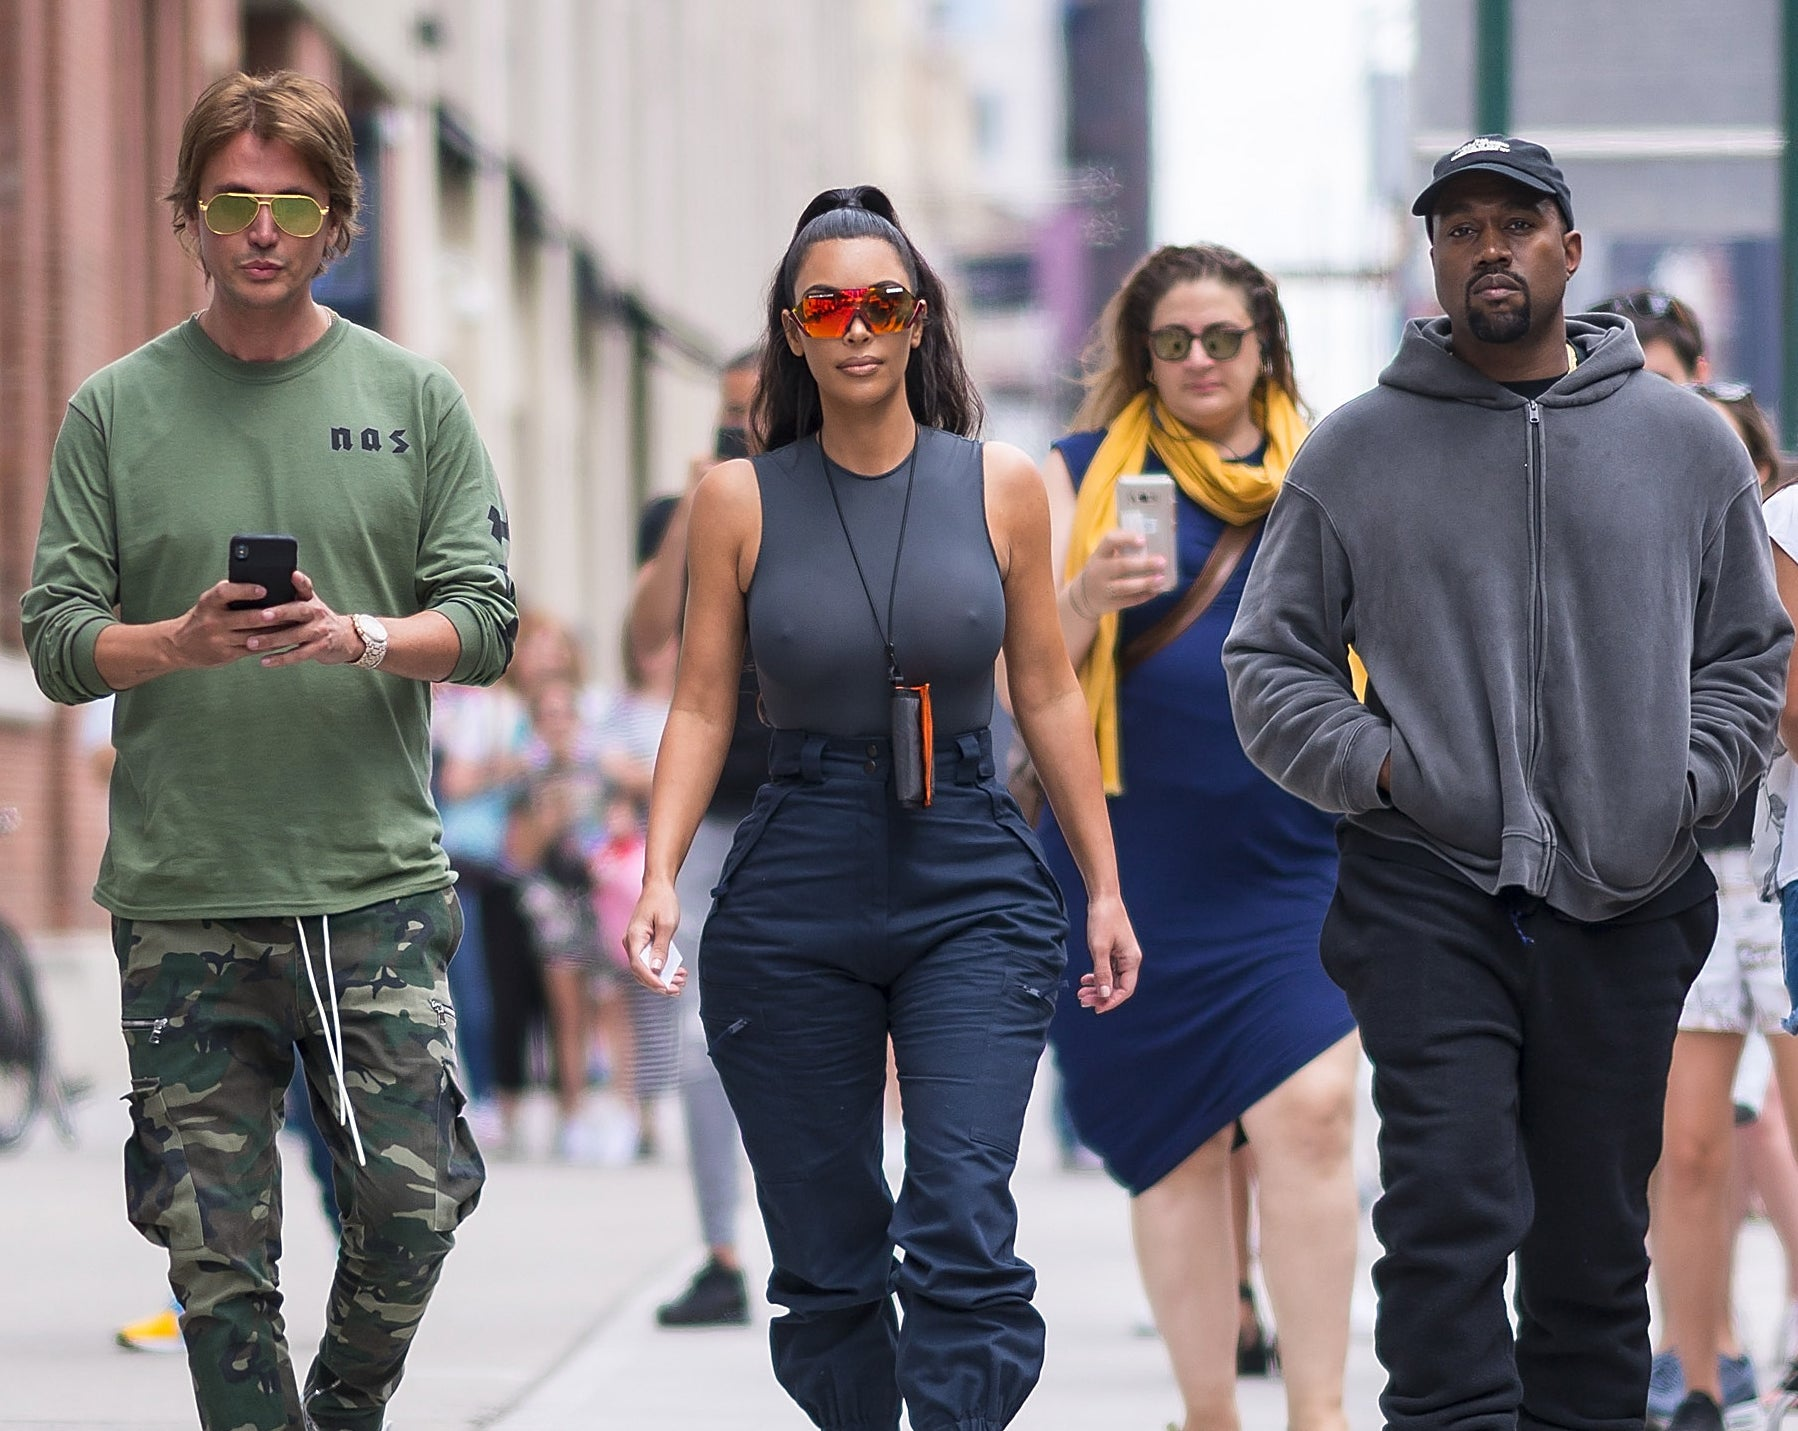 Kim, Jonathan, and Kanye walk together down a street in New York City